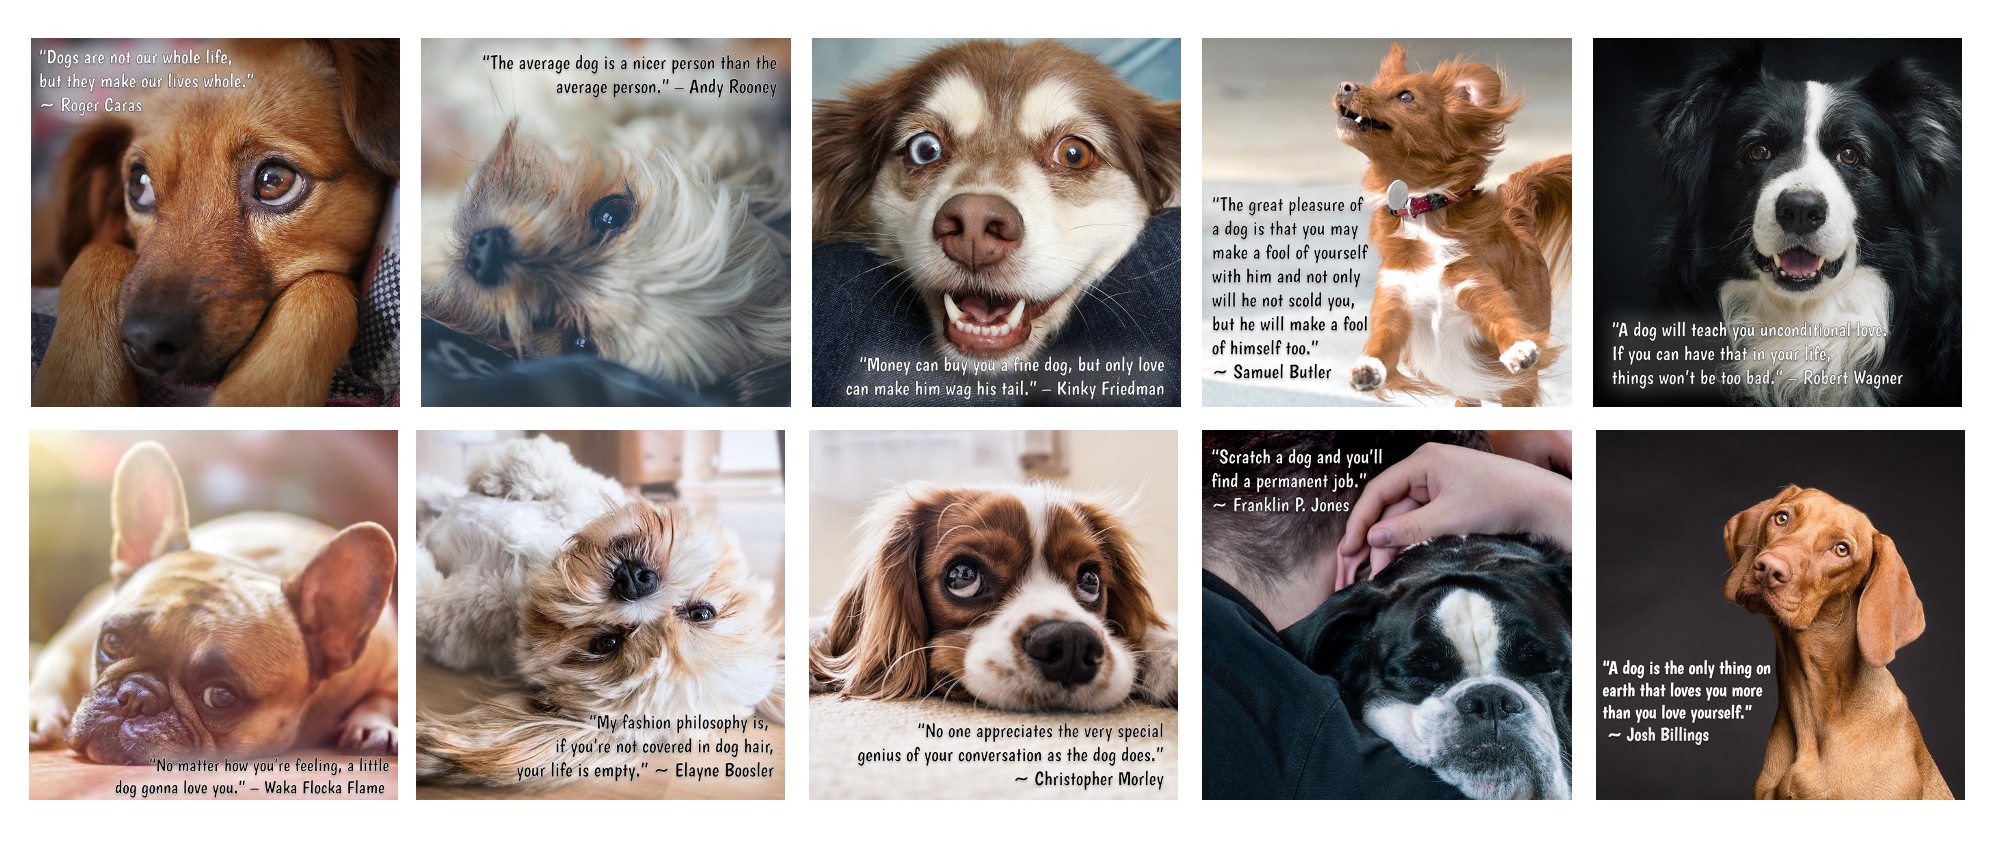 Inspirational Dog Quotes Graphics with PLR Rights